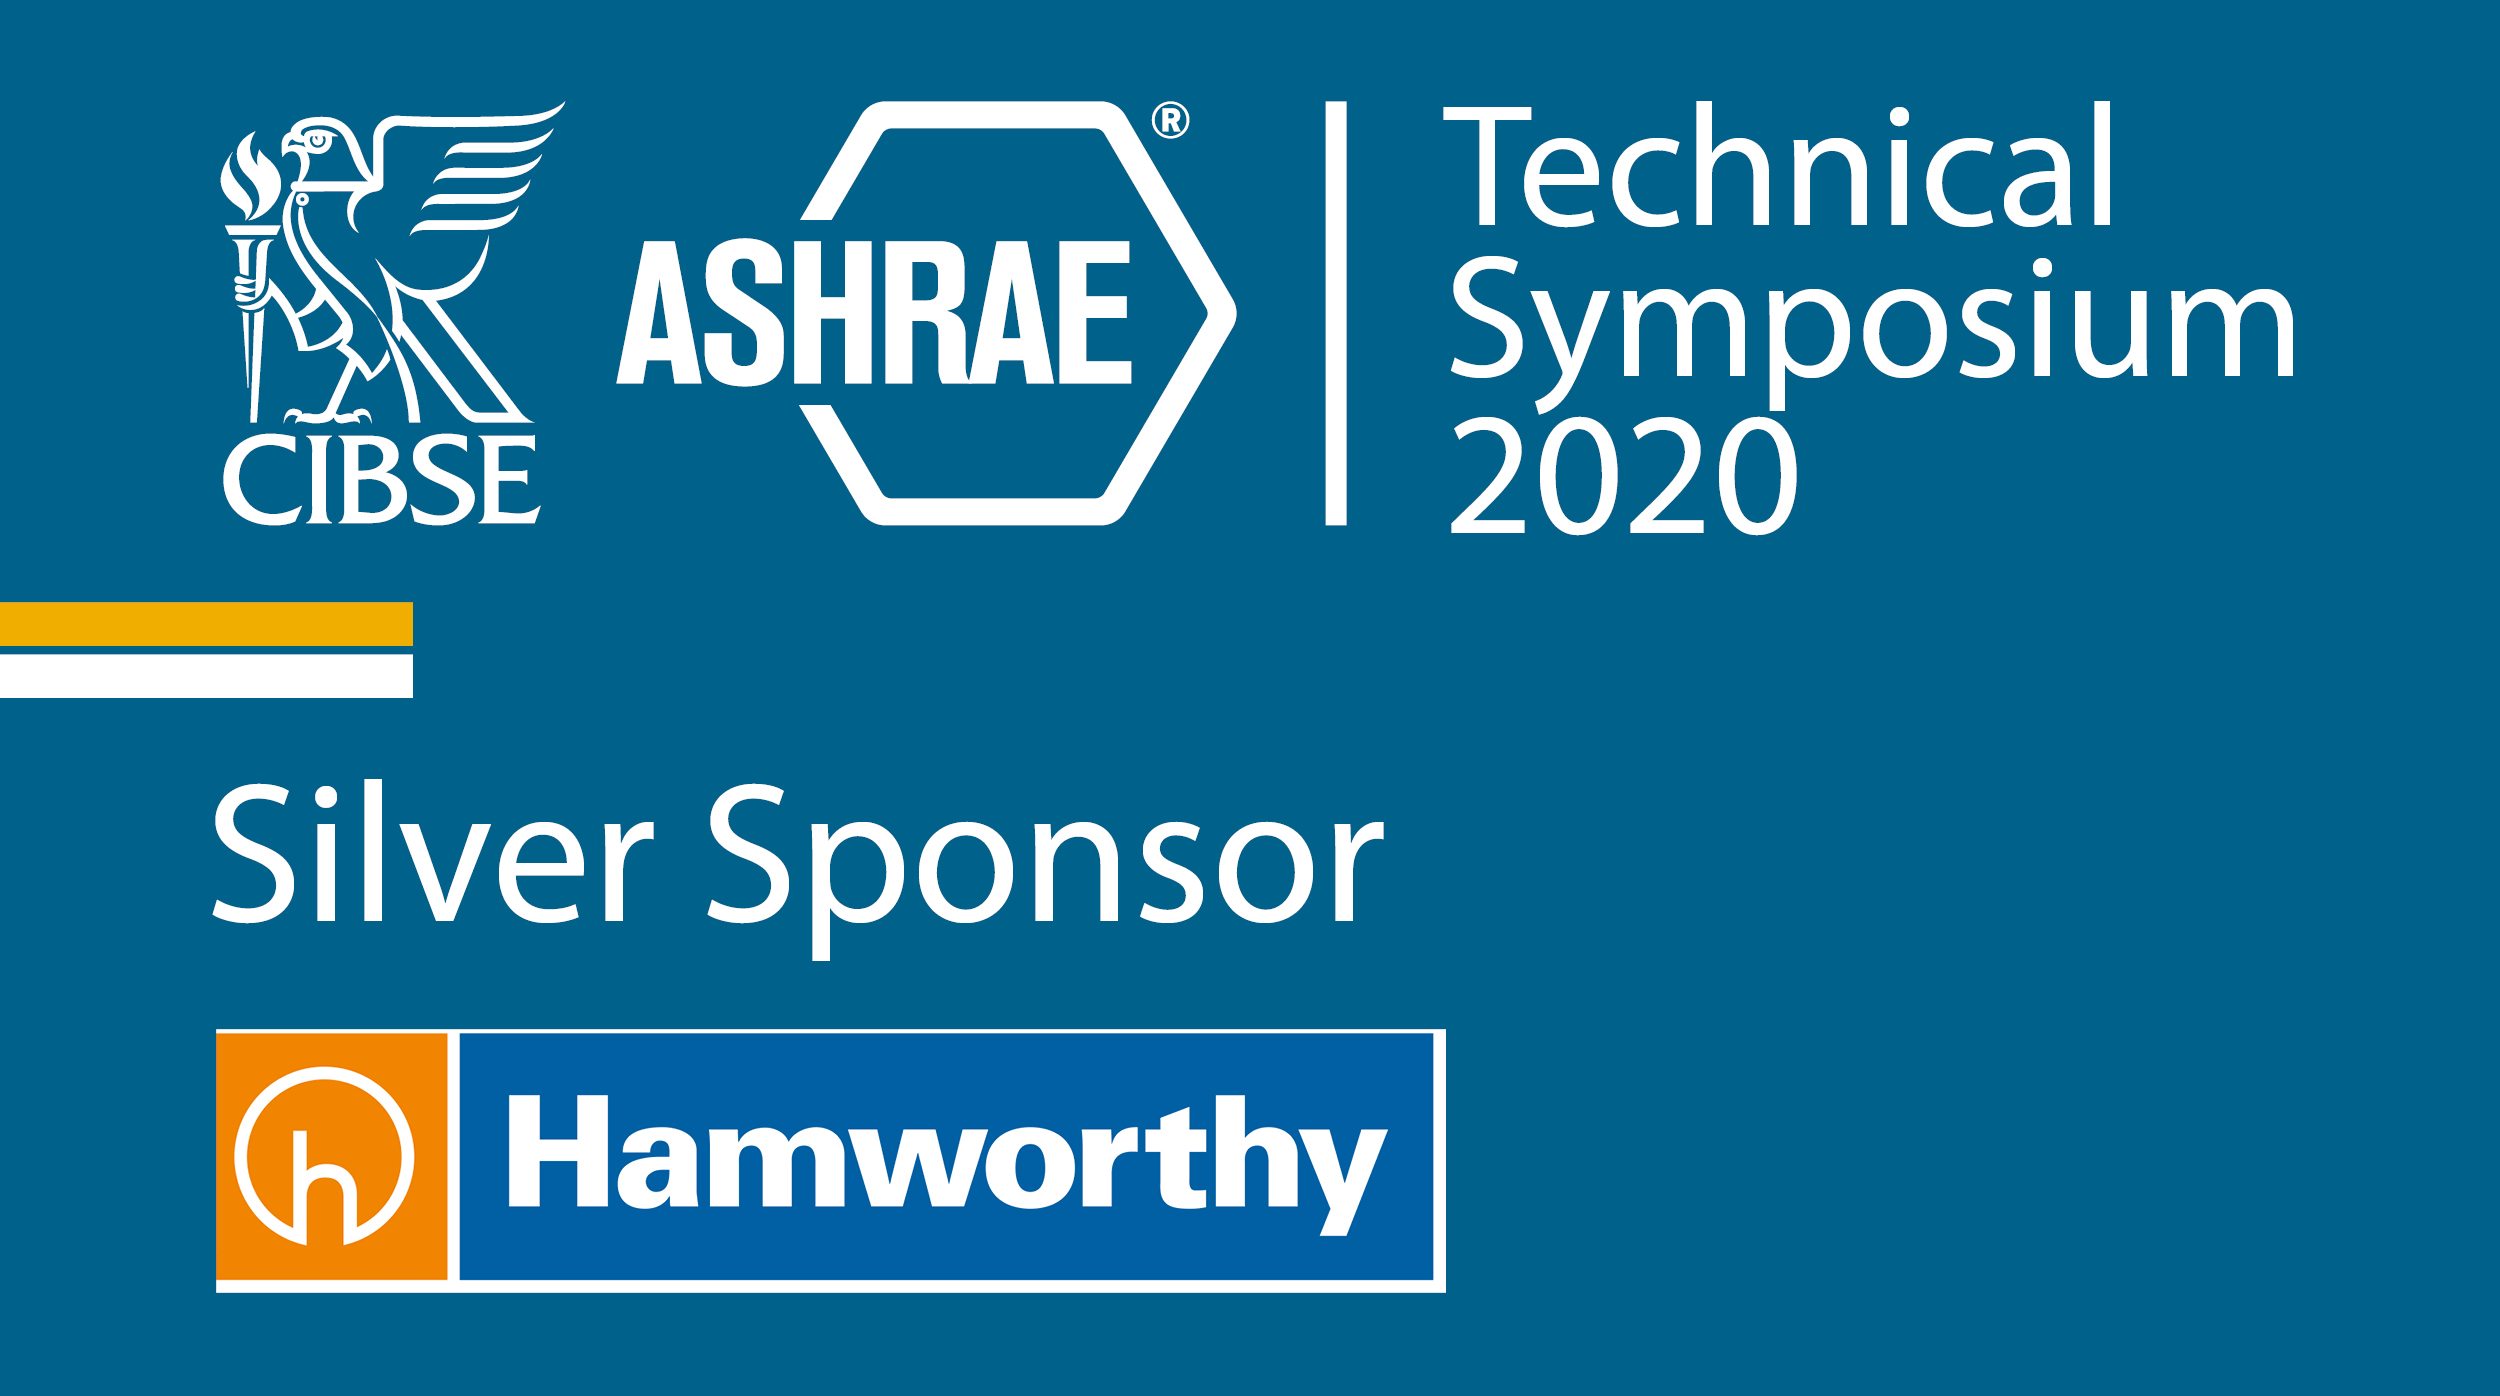 CIBSE ASHRAE Technical Symposium